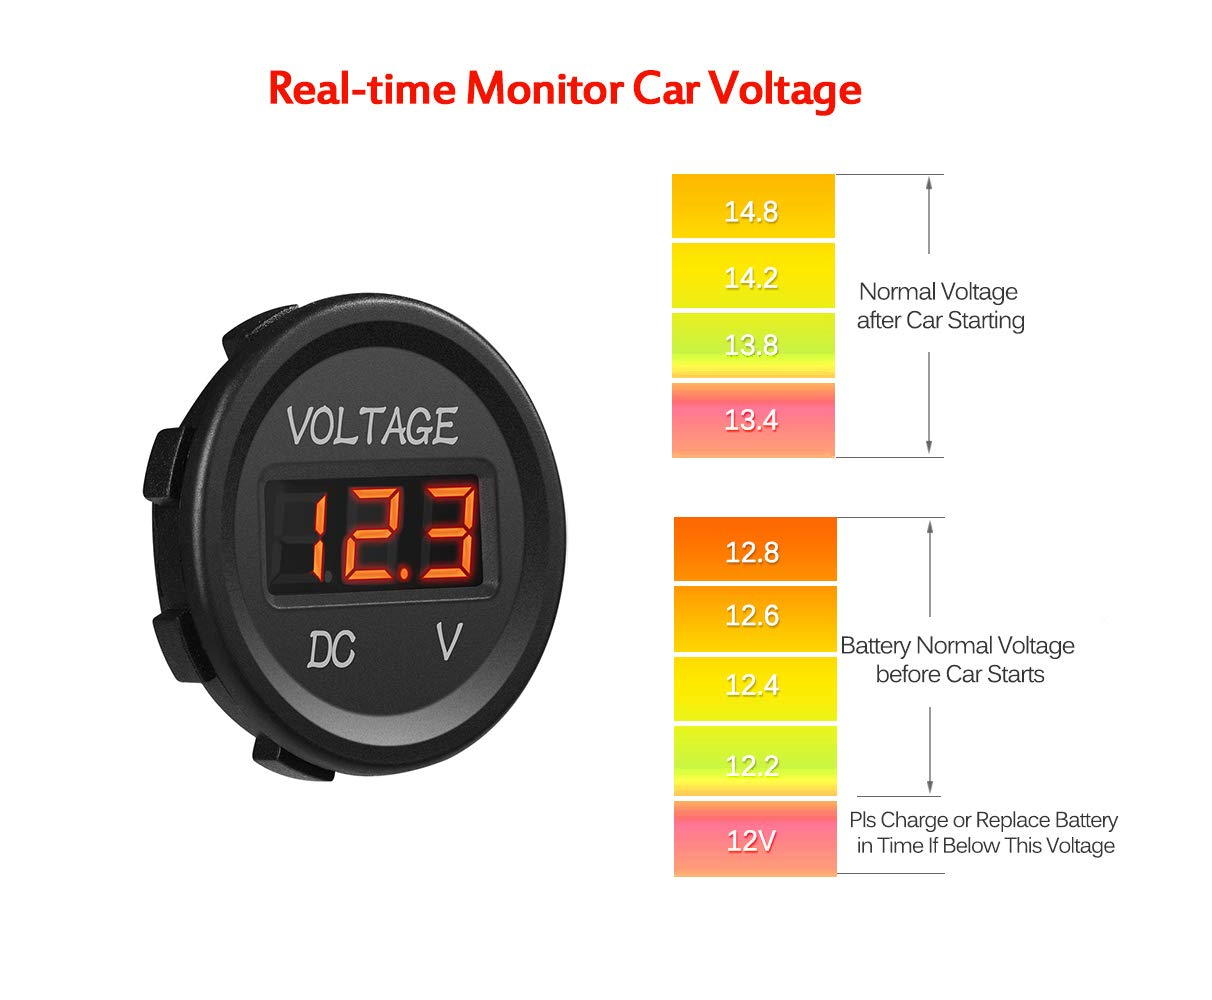 CyanHall DC 12V LED Digital Display Voltmeter Waterproof for Boat Marine Vehicle Motorcycle Truck ATV UTV Car Camper Caravan Round Panel Red